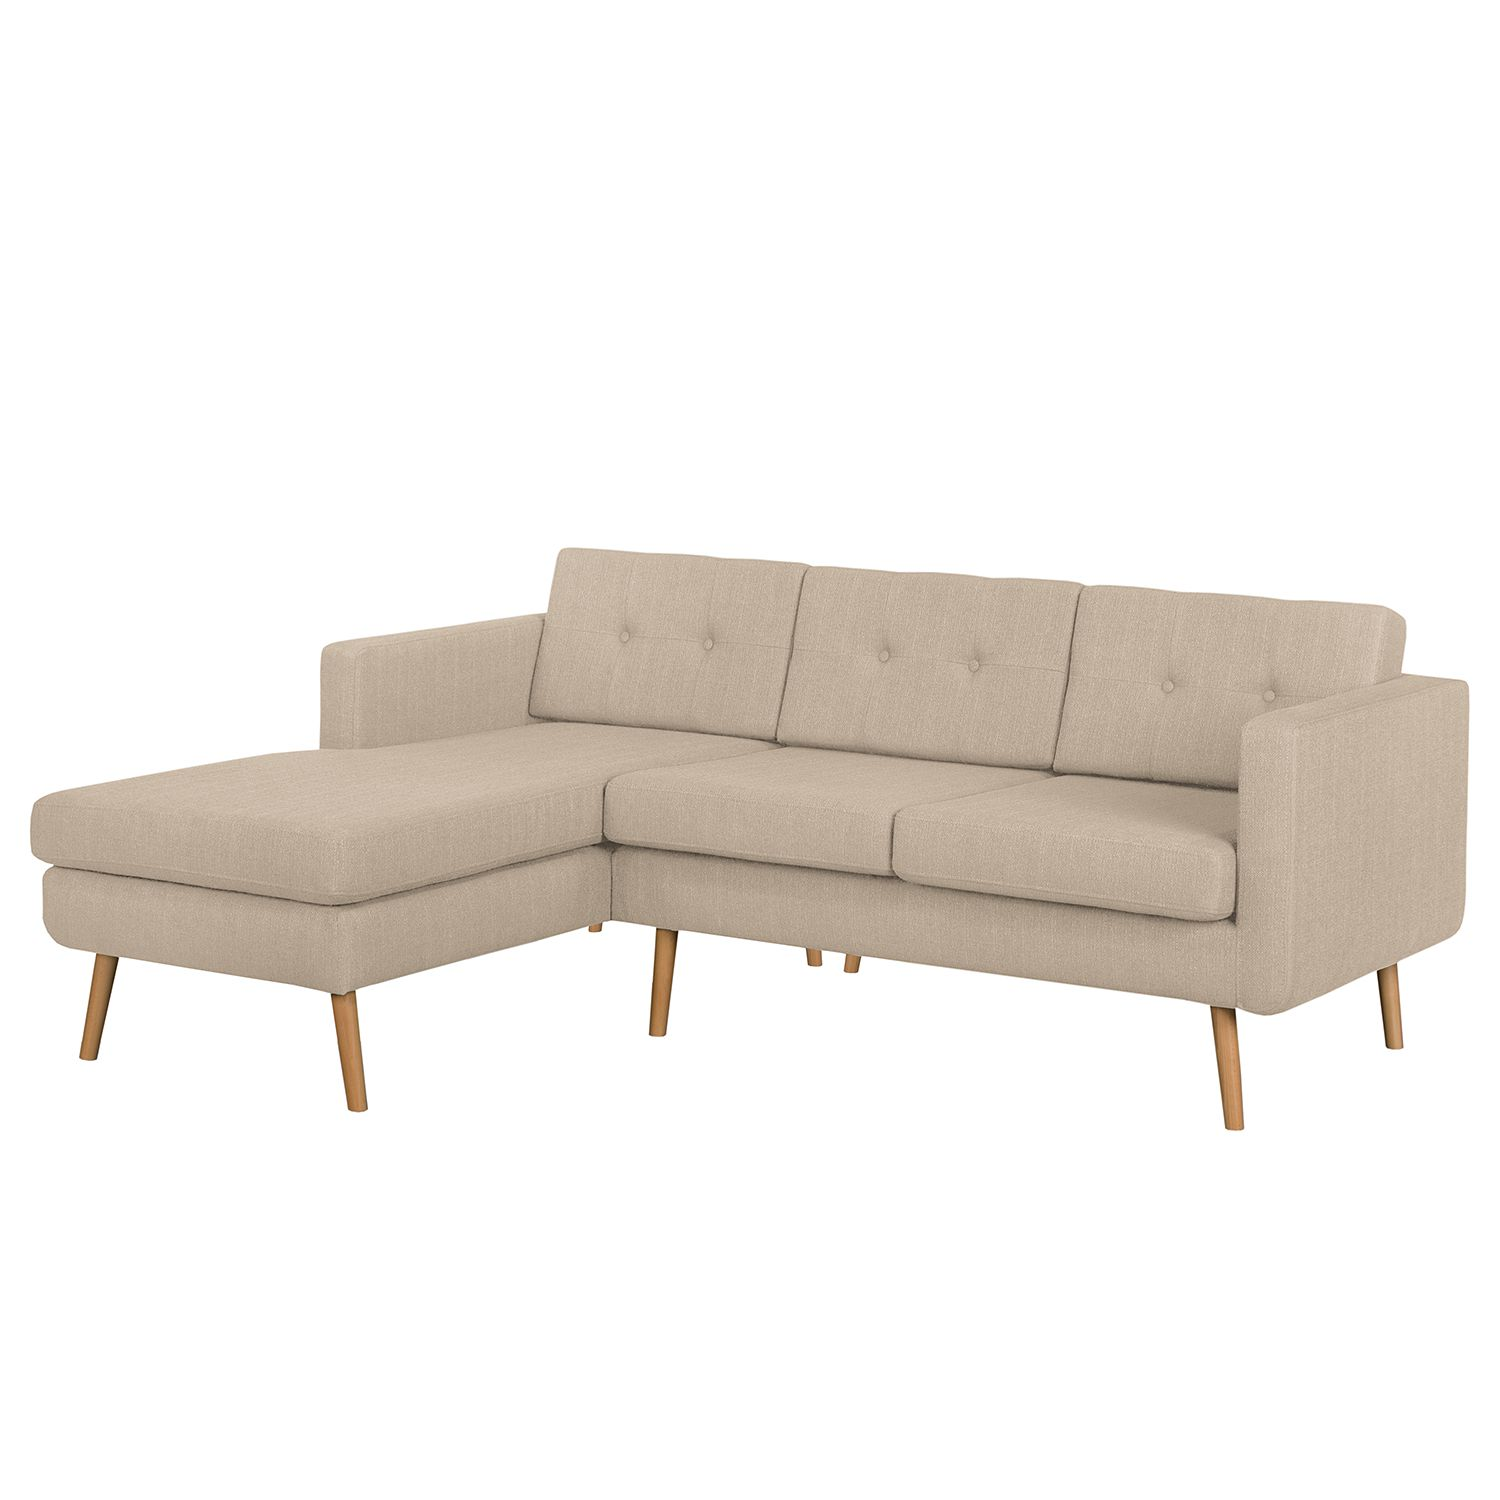 home24 Mørteens Ecksofa Croom Cappuccino Webstoff 211x84x154 cm